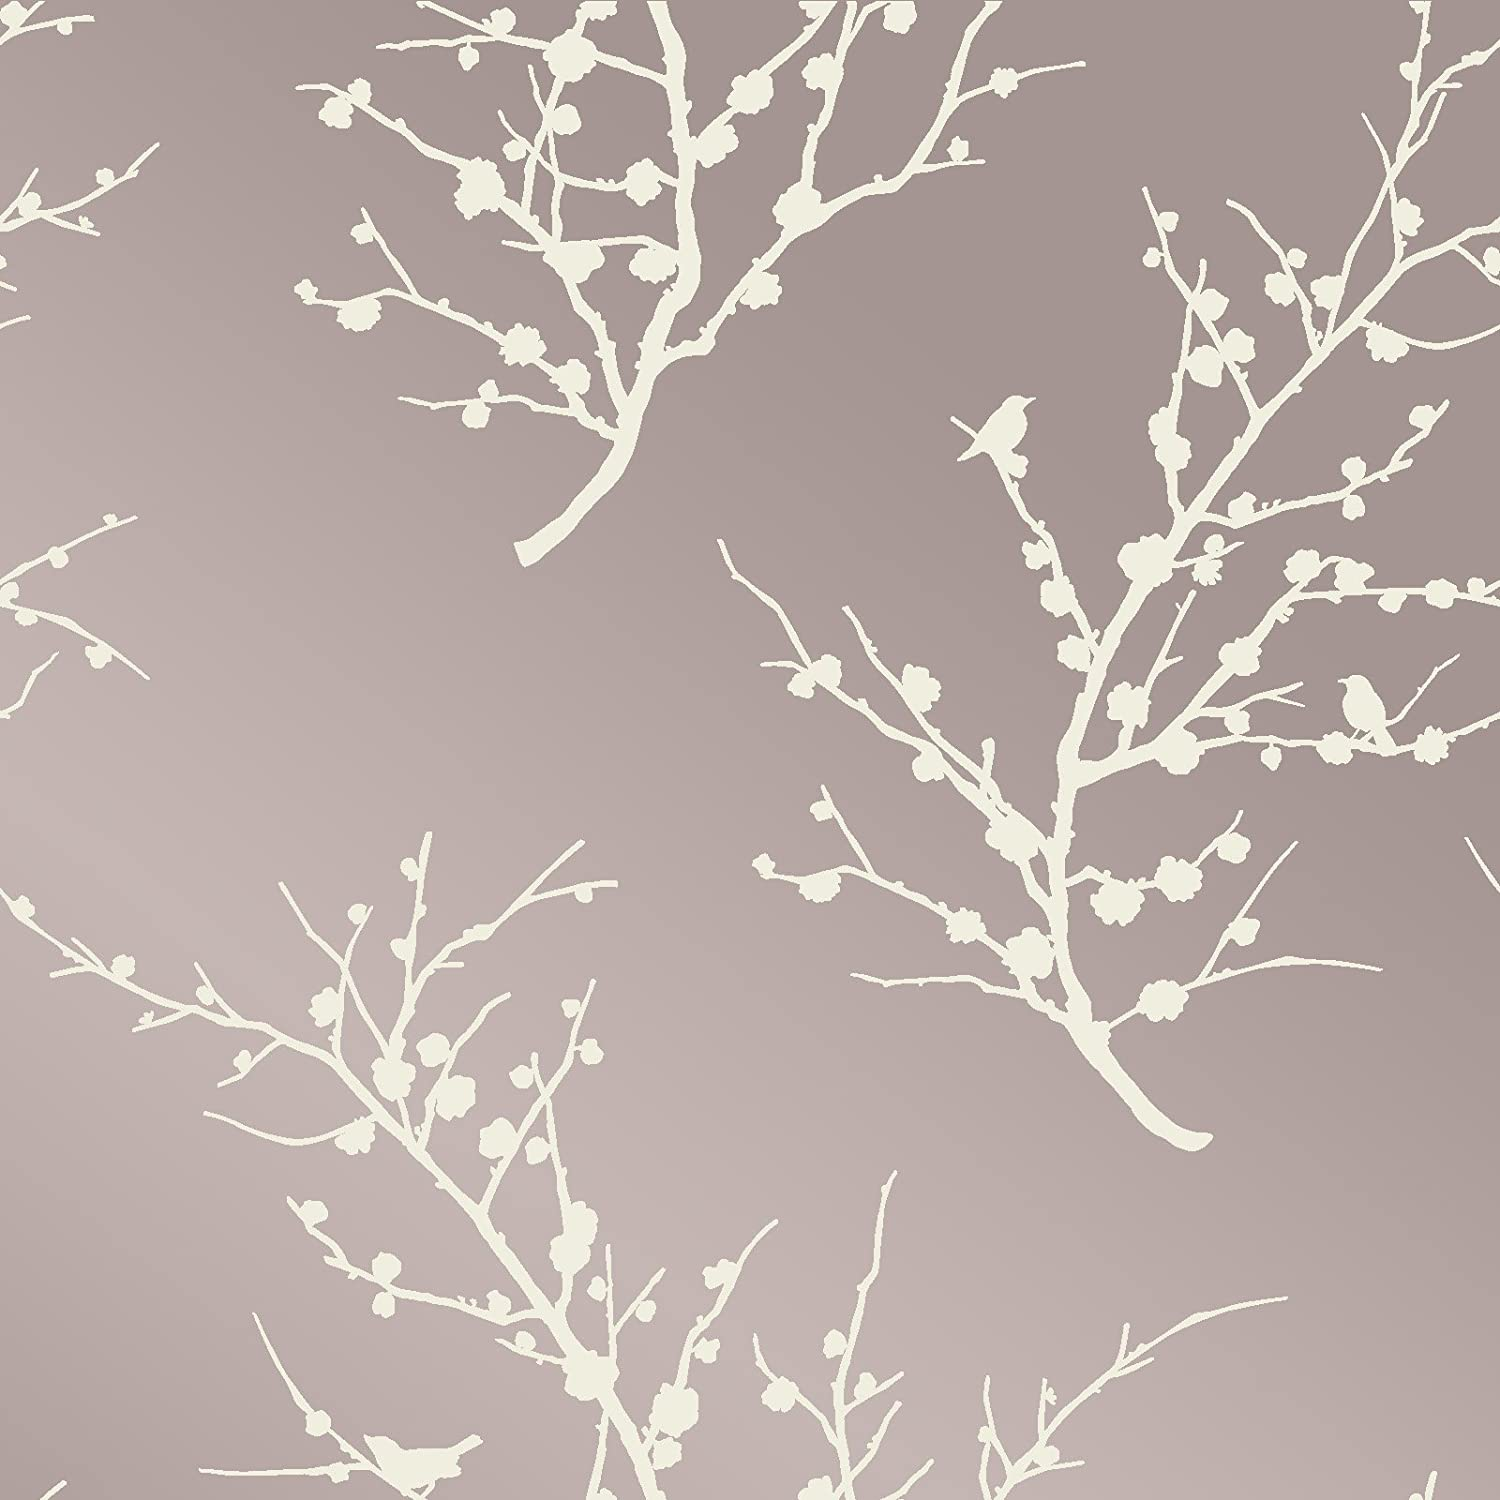 Champagne//Taupe 061671500398 Tempaper Cherry Blossom Removable Wallpaper